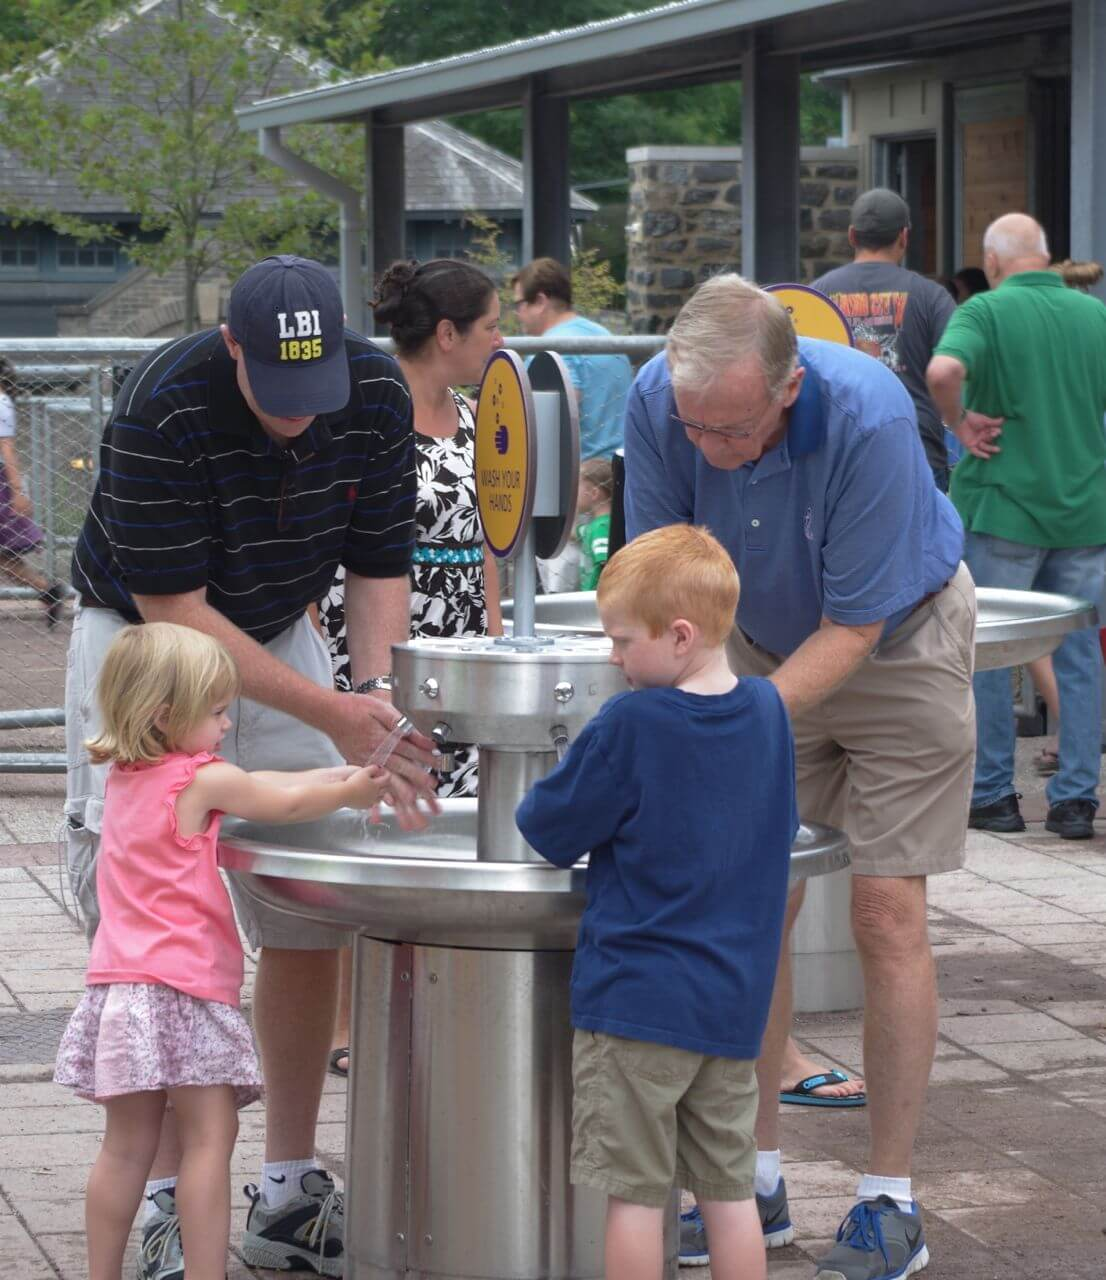 Family enjoying hand washing stations at Philadelphia Zoo KidZooU